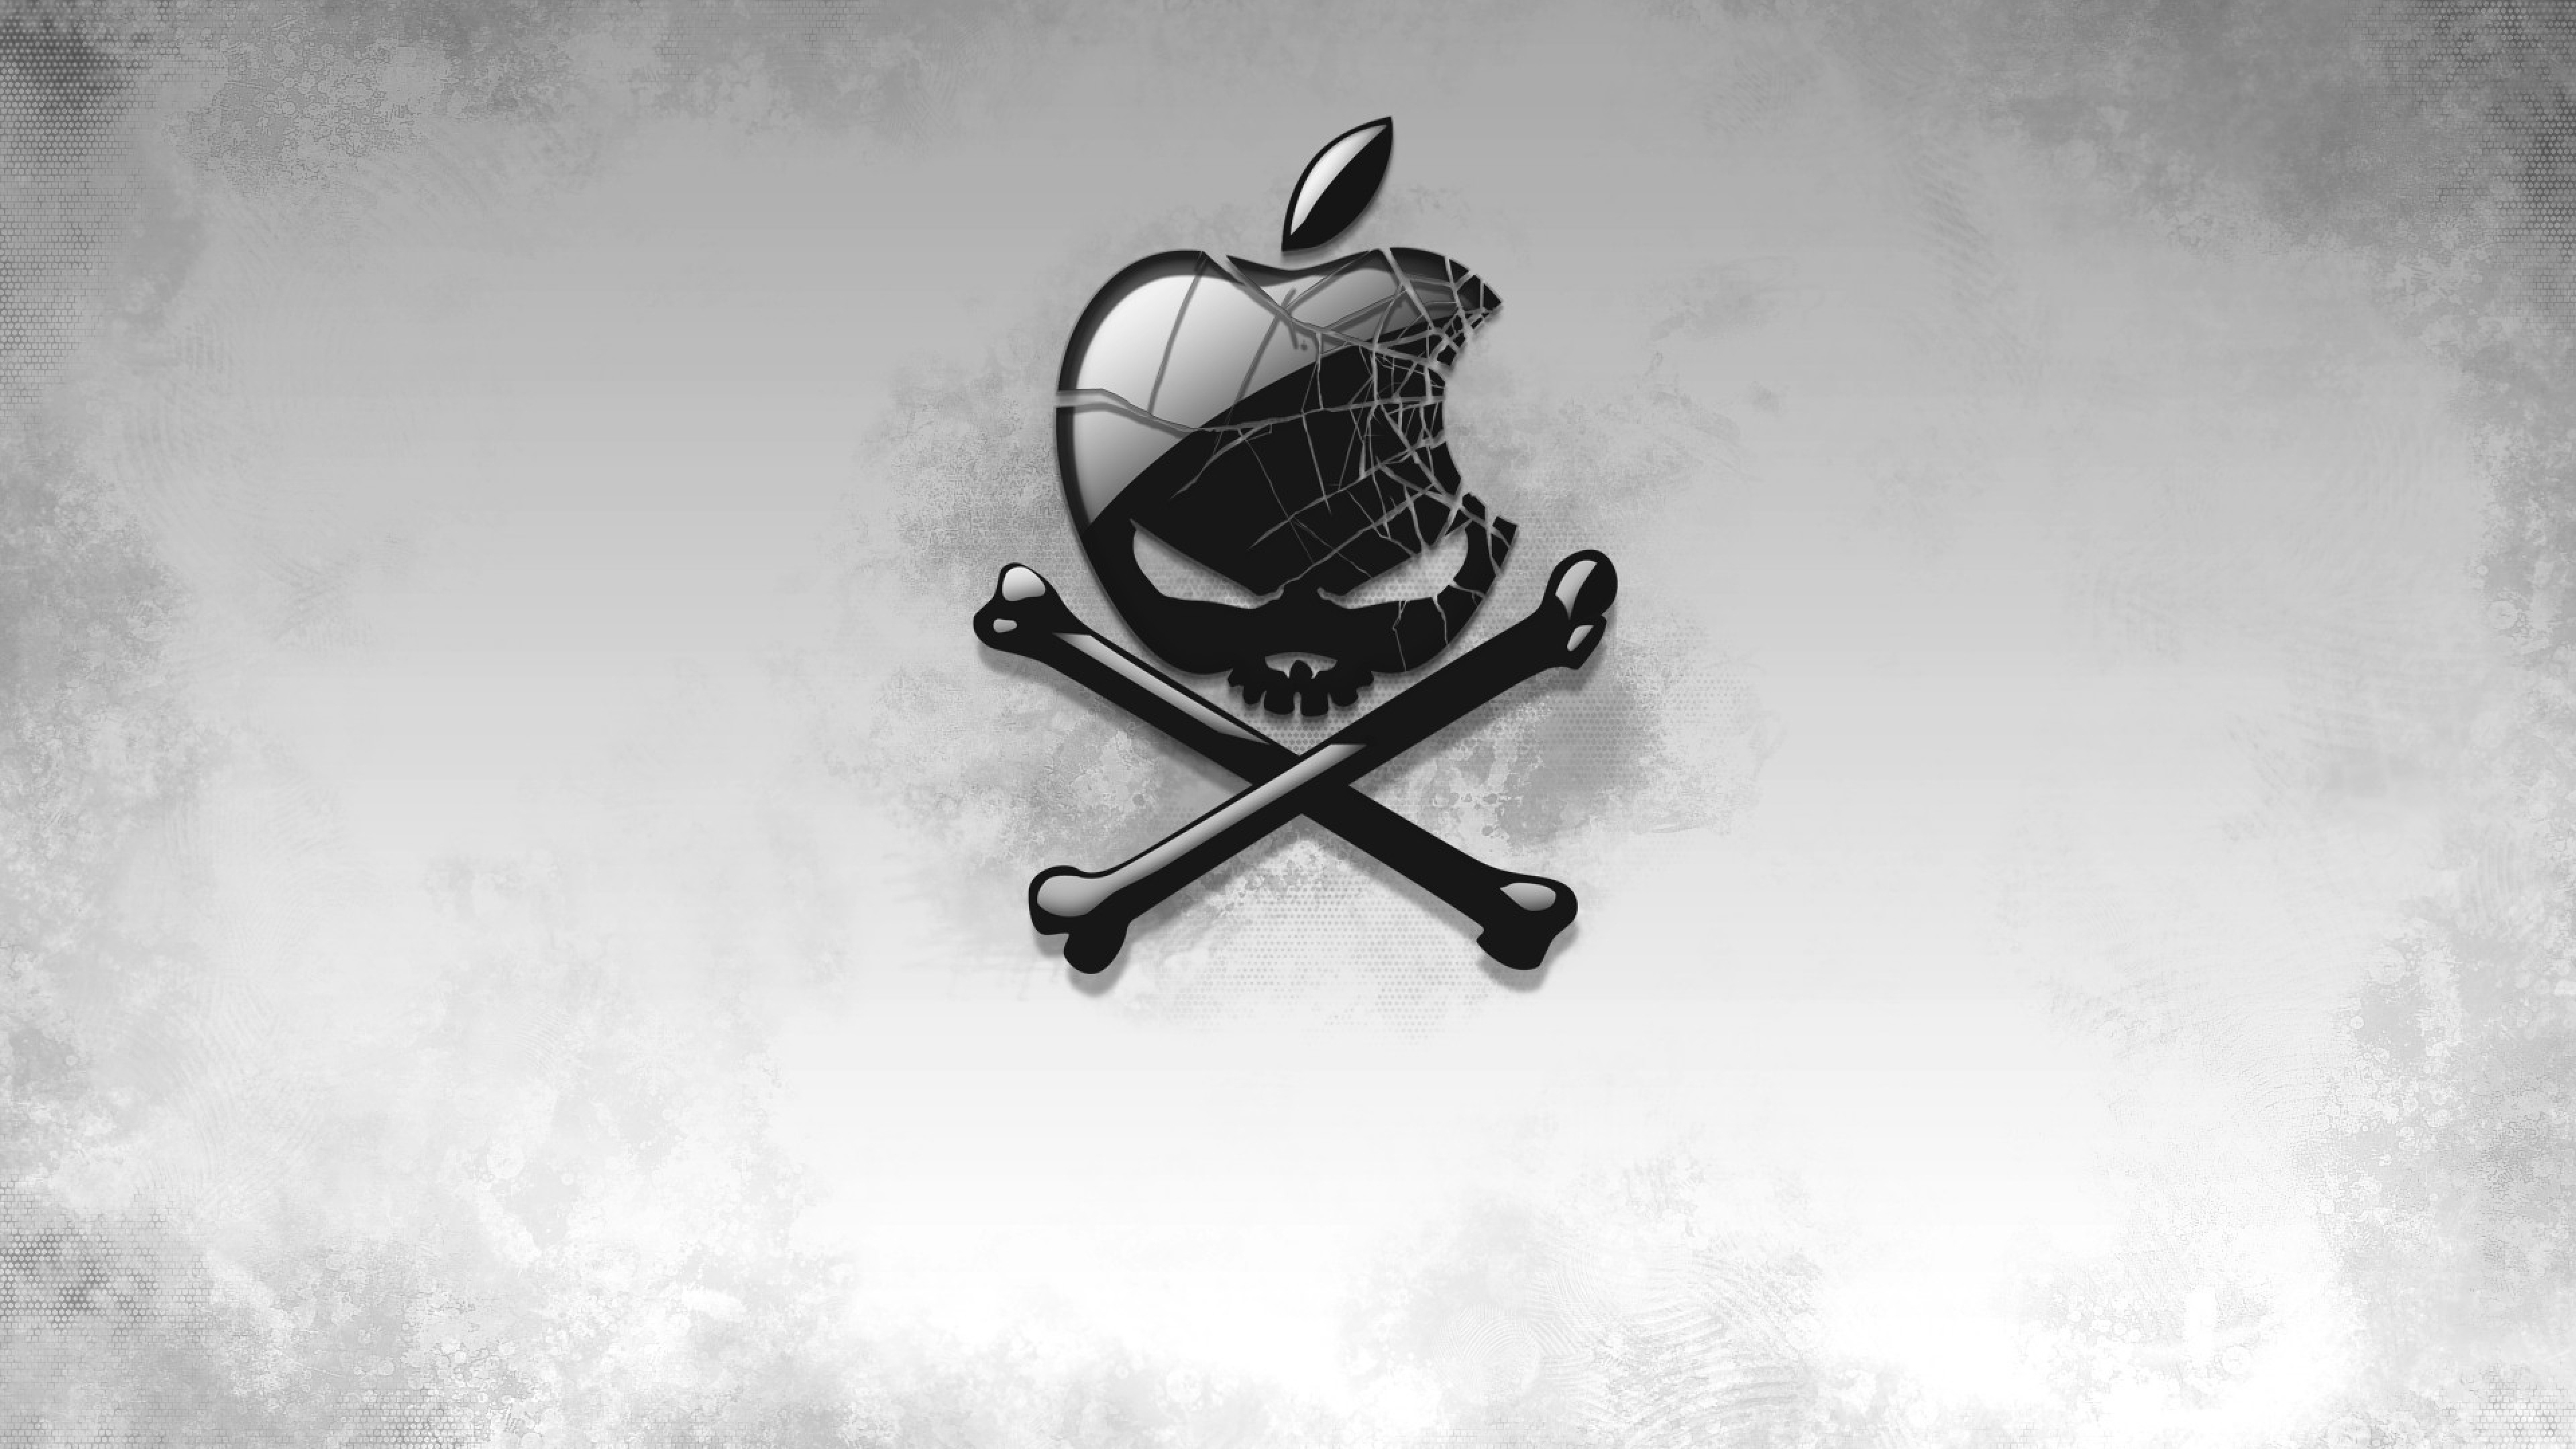 black apple skull, hd artist, 4k wallpapers, images, backgrounds